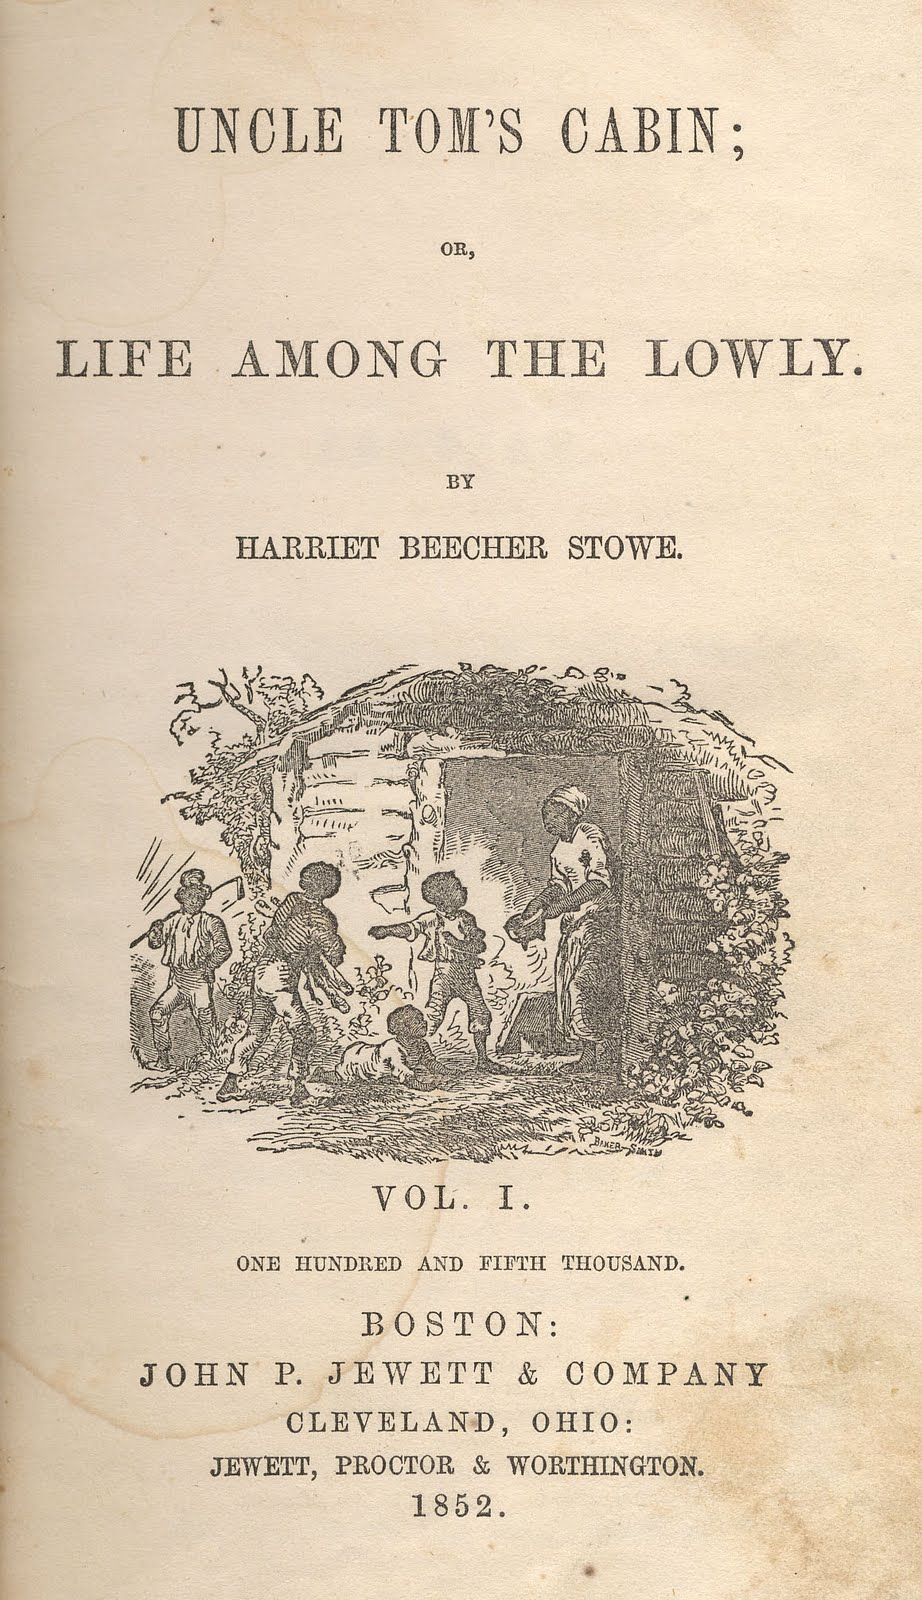 Hammet Billings' engraving in Uncle Tom's Cabin by Harriet Beecher Stowe.